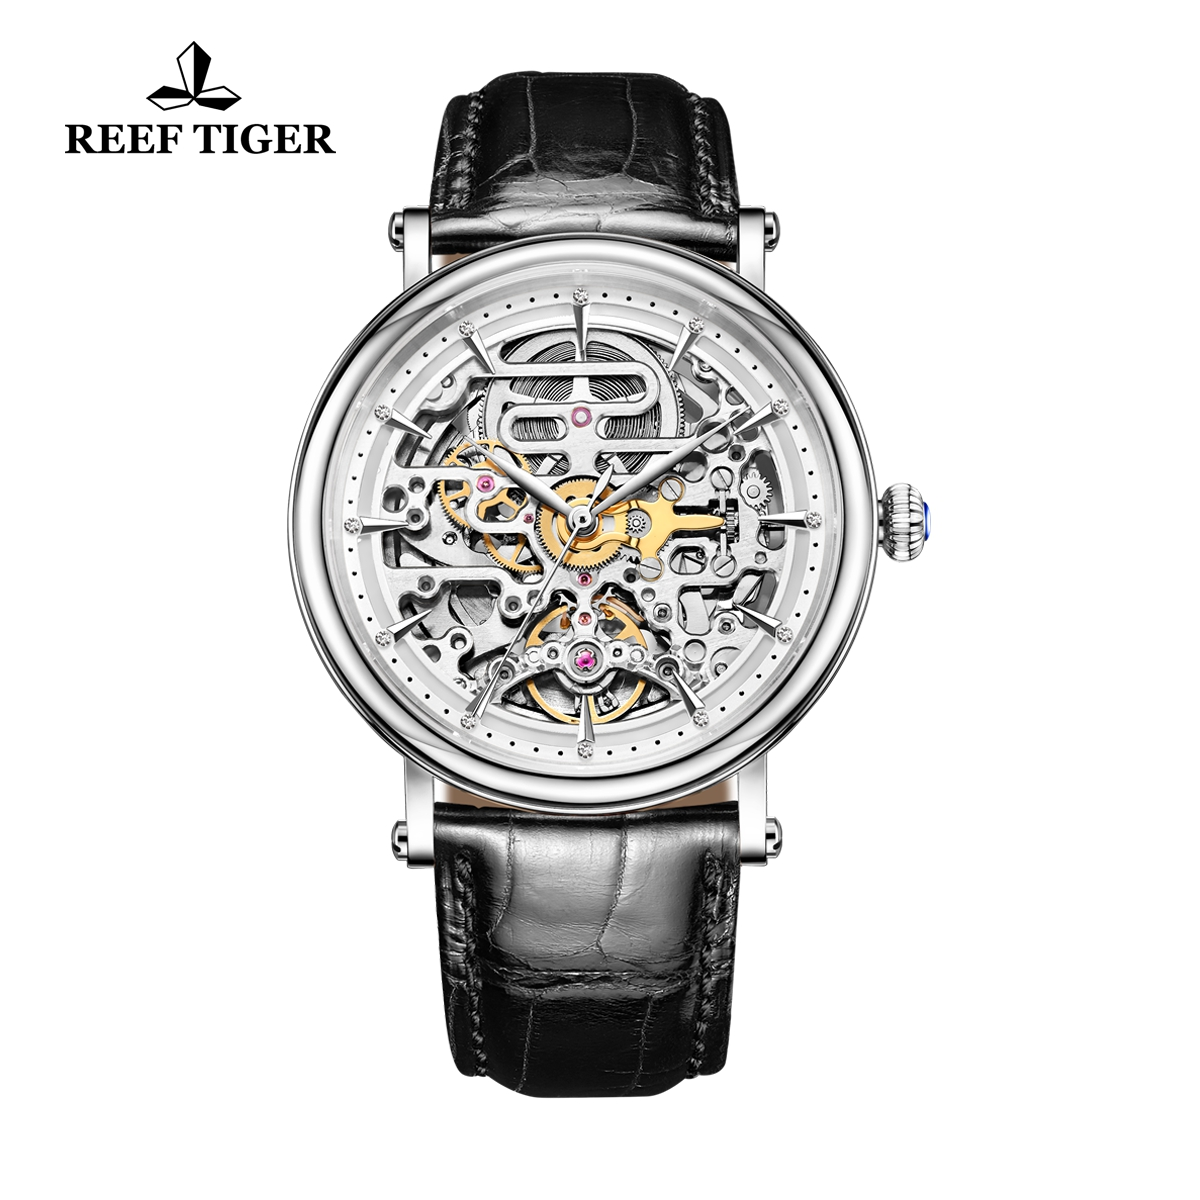 Reef Tiger Casual Watch with Baroque Style Skeleton Dial Steel Calfskin Leather RGA1917-YWB